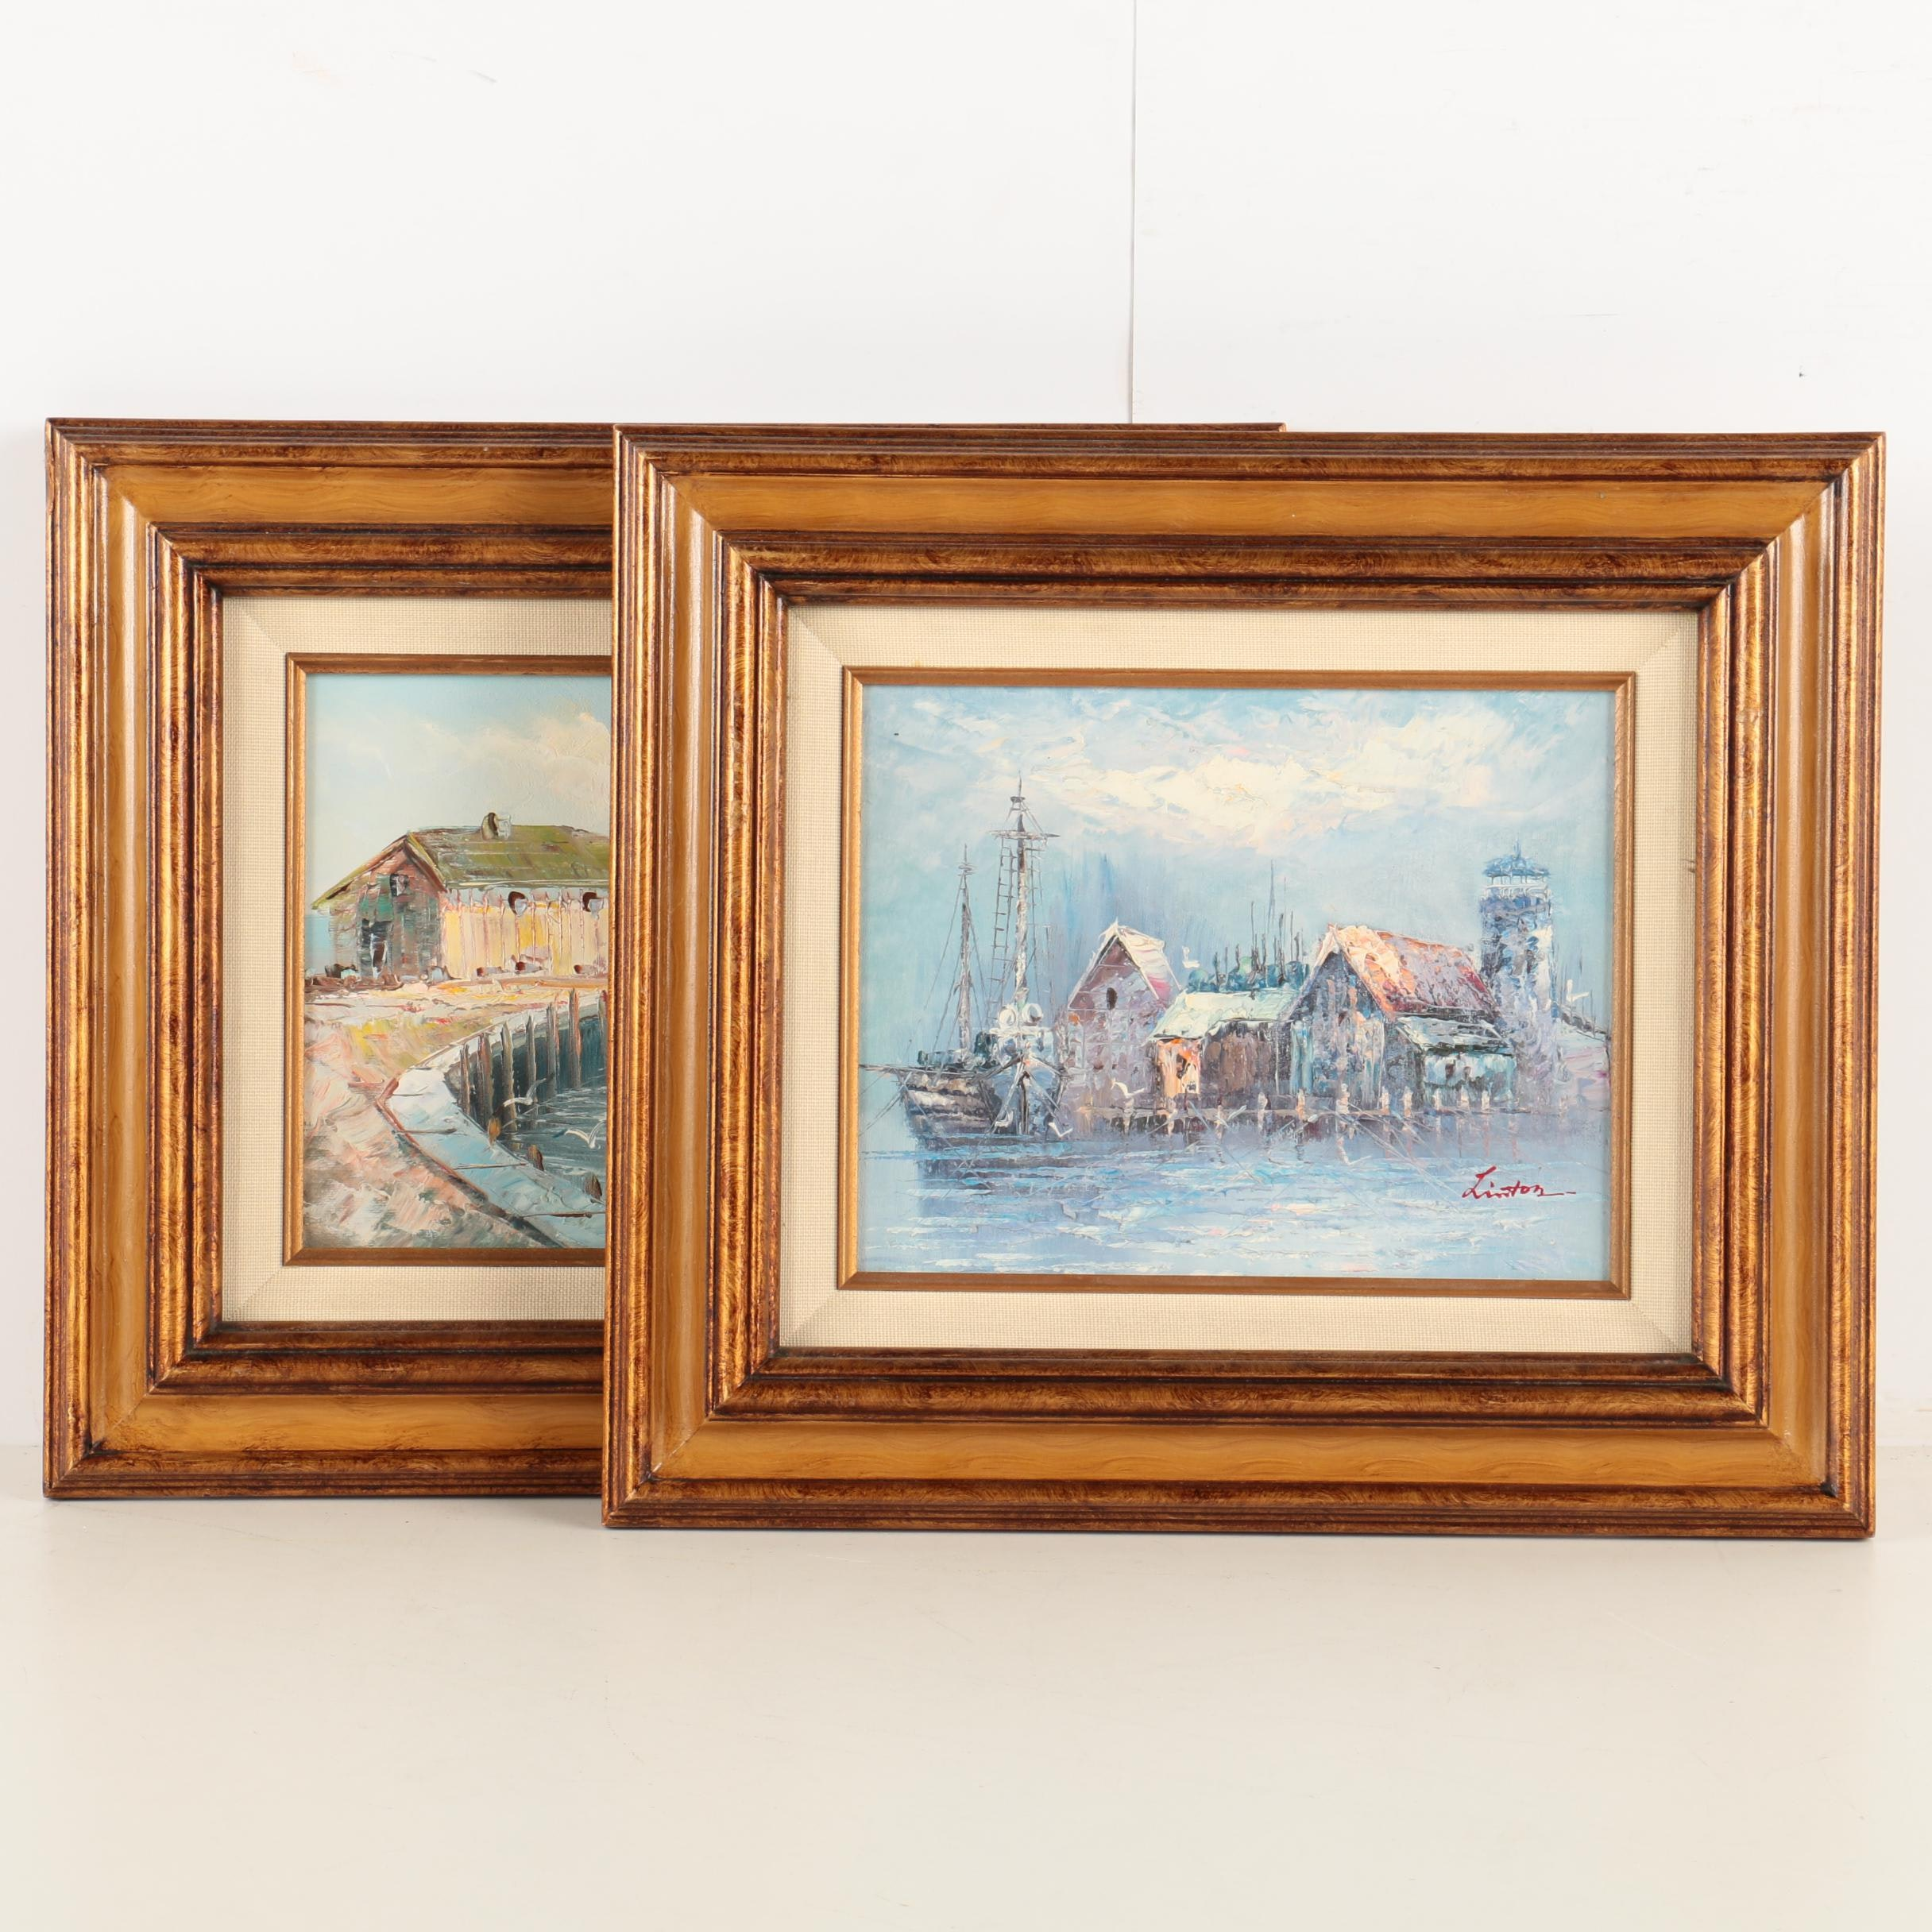 W. Sherman and Linton Oil Paintings on Canvas of Harbors